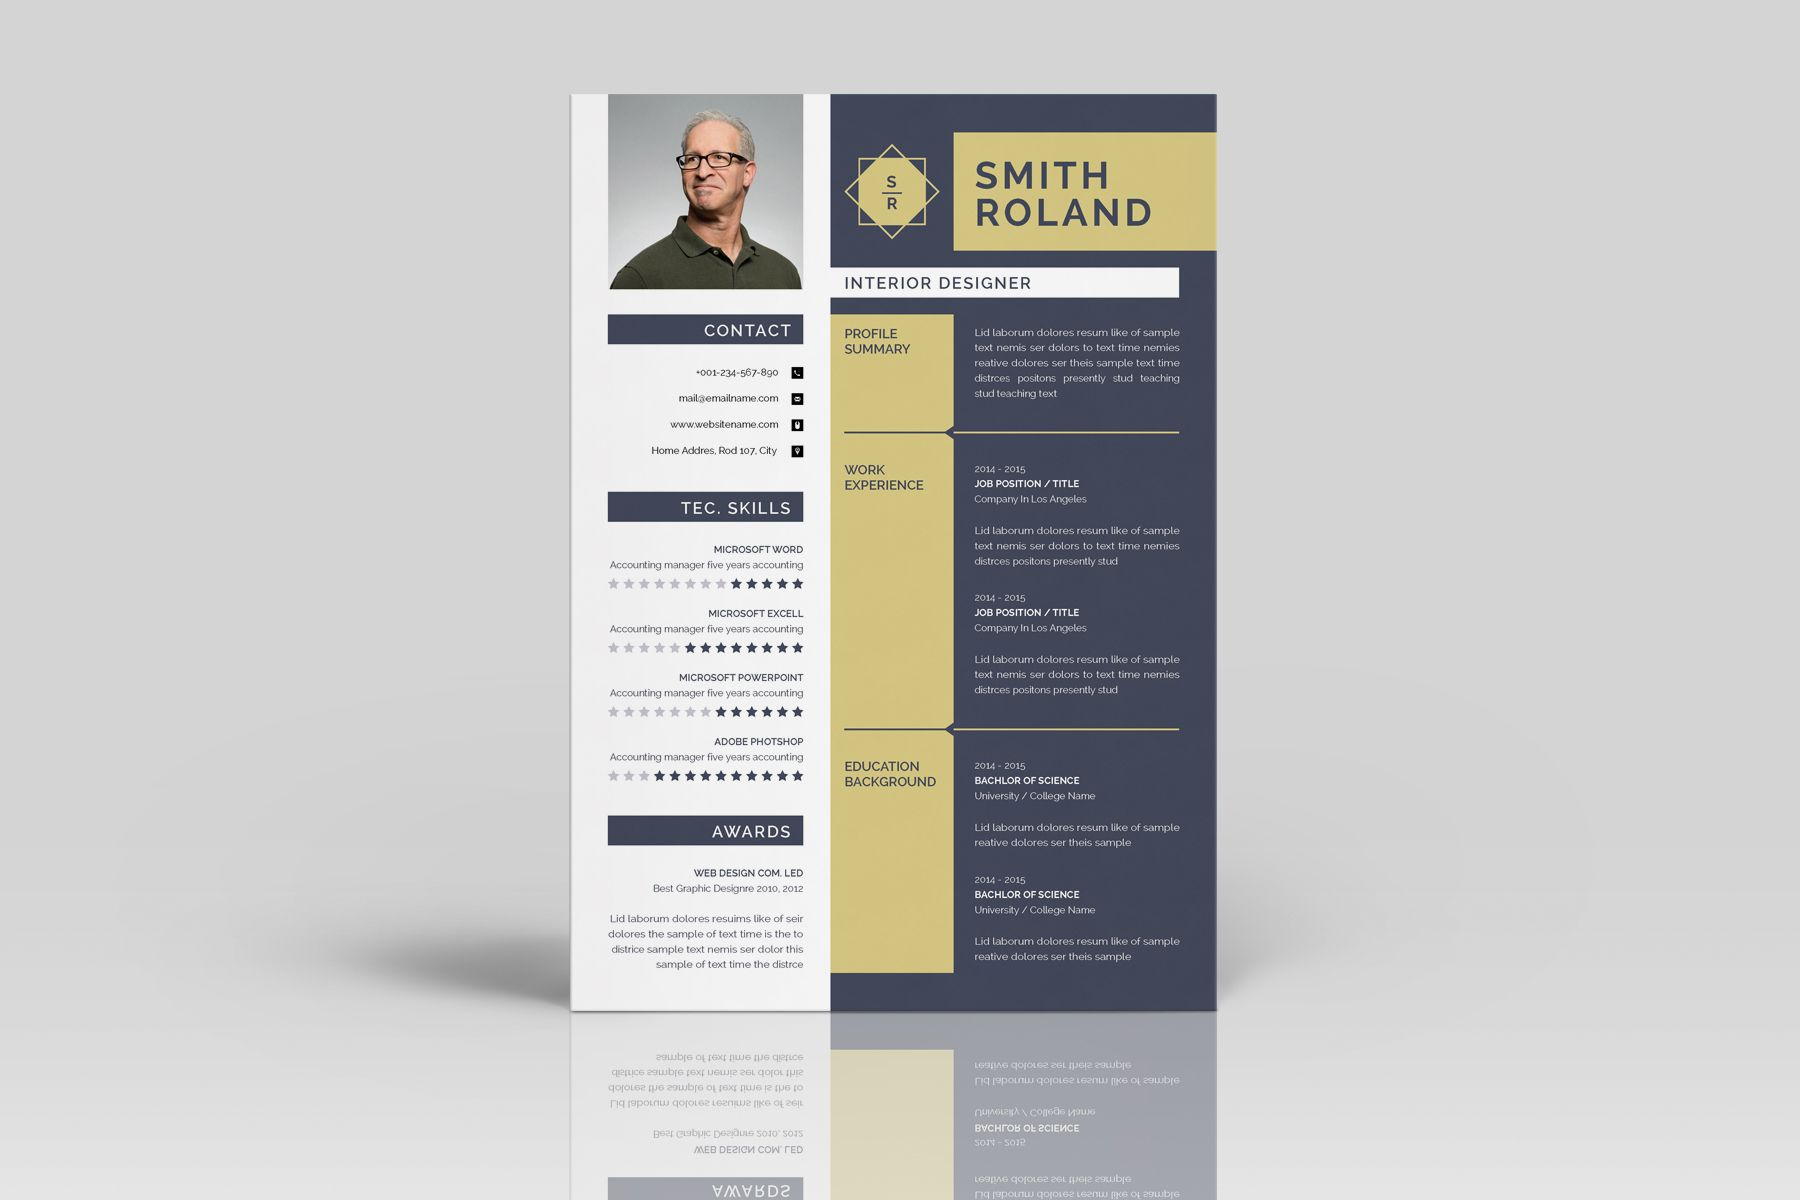 Roland Smith Resume Template Resume Template | Best Web ...